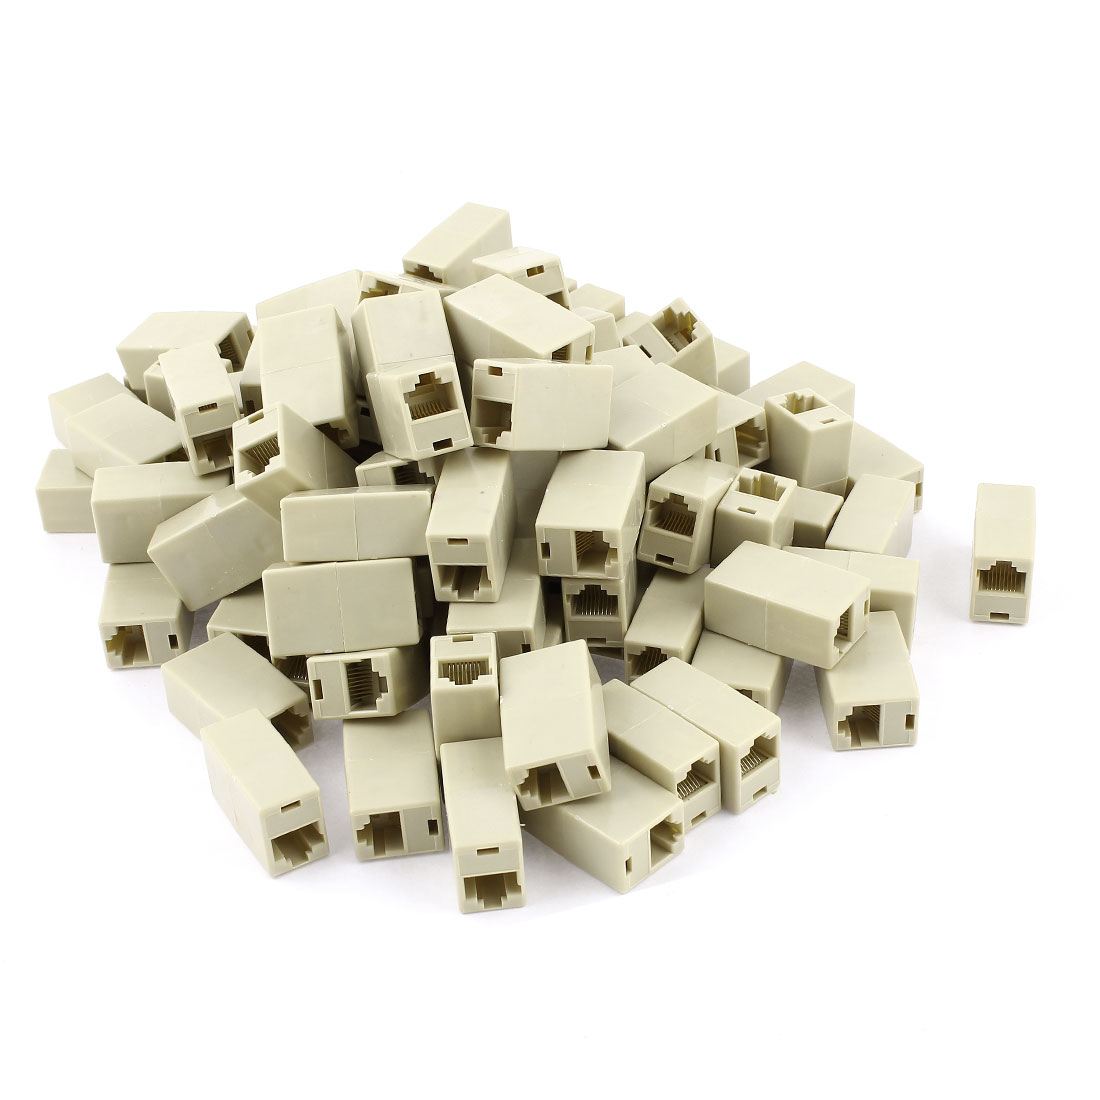 100 Pcs Beige Plastic Shell 8P8C RJ45 Female Cat5 Network Cable Connector Adapter